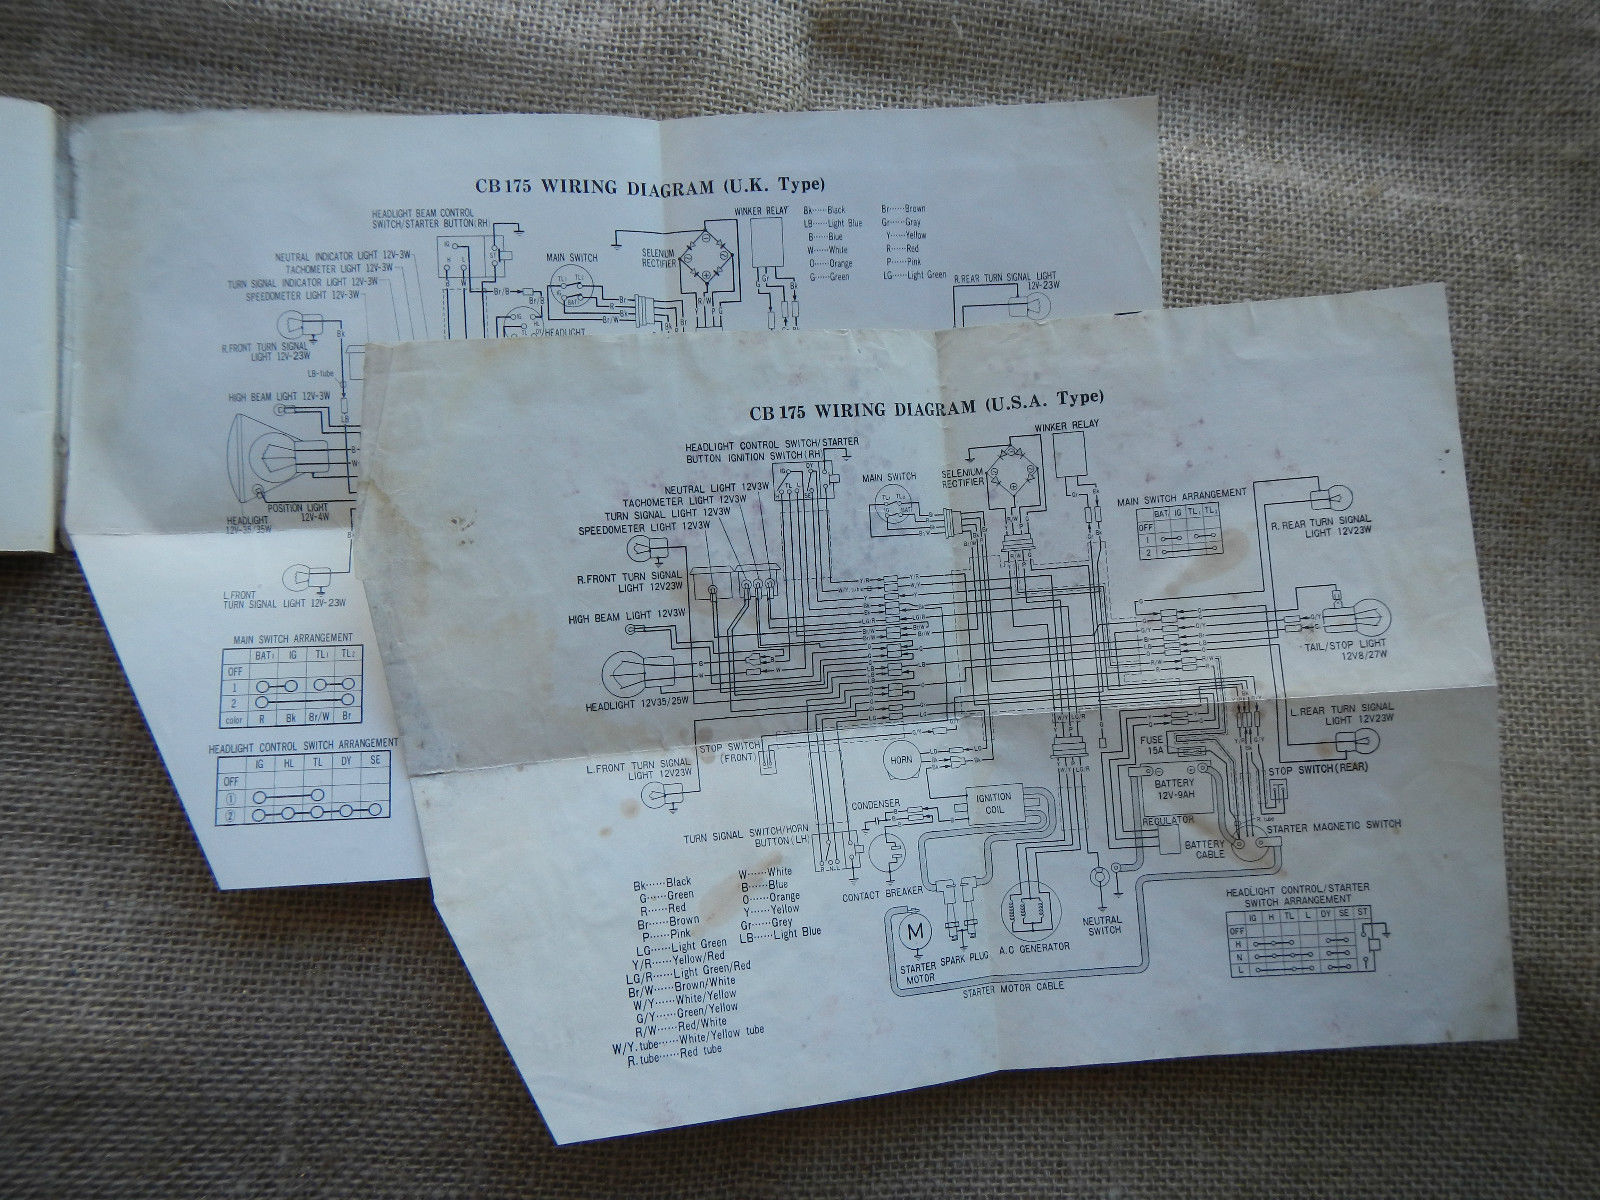 72 Cb175 Wiring Diagram Diagrams Schematics 1972 Honda Cb 175 K6 K 6 Owner And 50 Similar Items Owners Manual